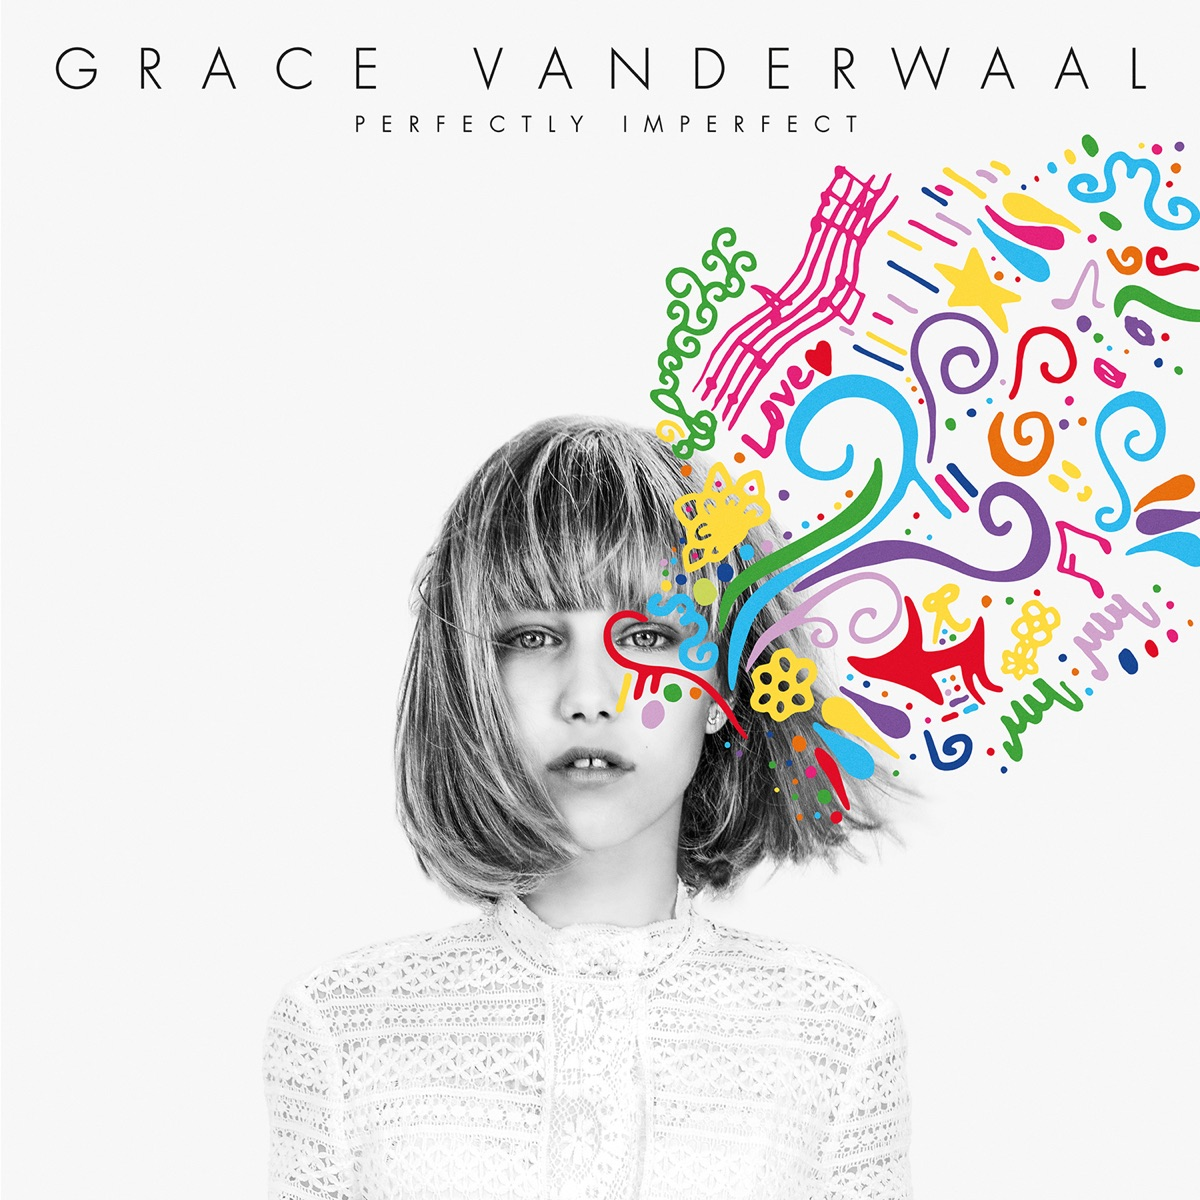 Perfectly Imperfect - EP Grace VanderWaal CD cover